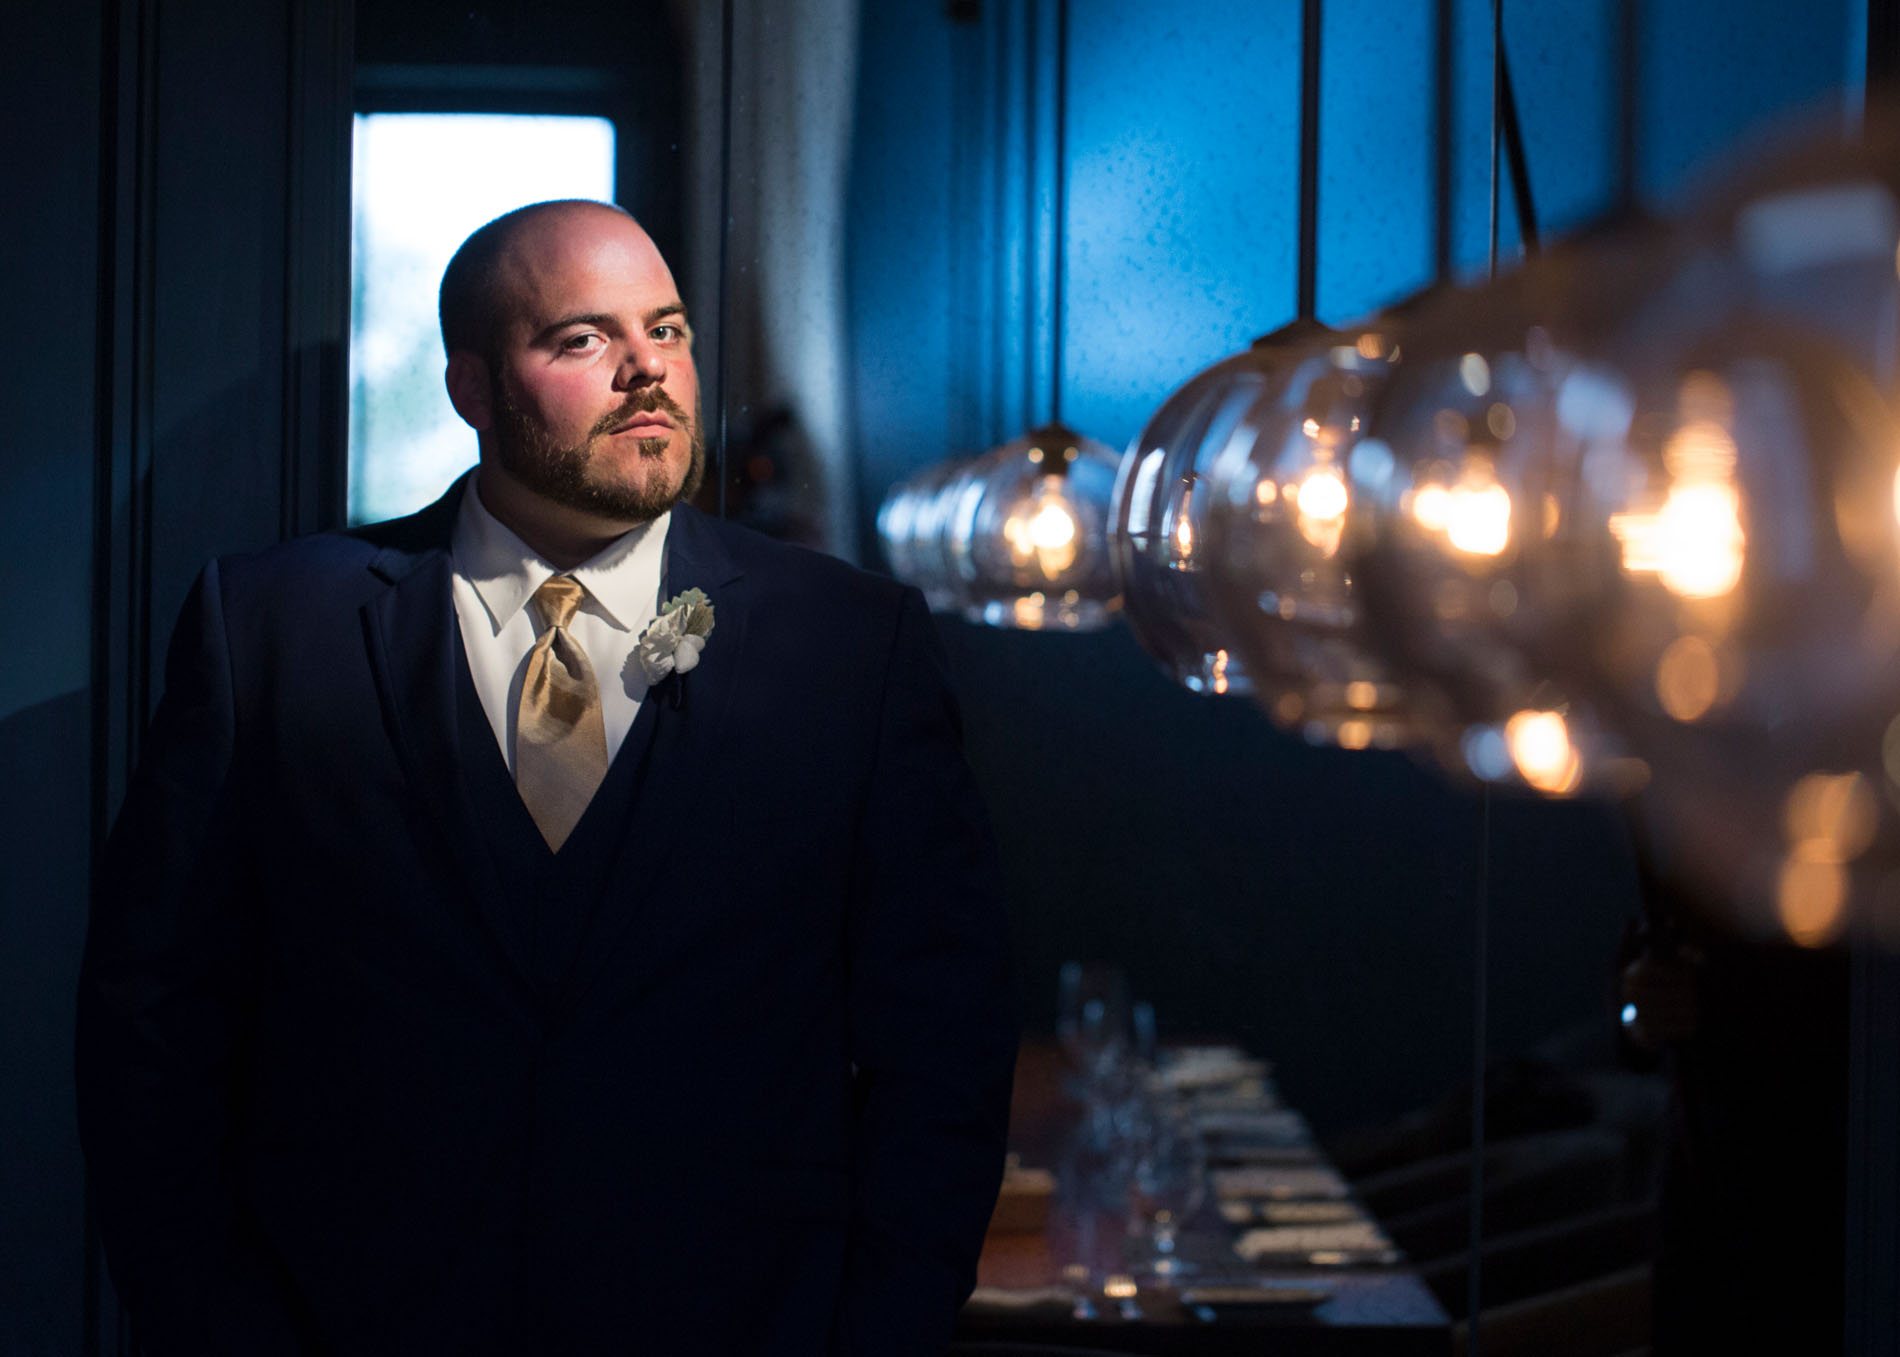 Favorite Wedding Pictures from Wentworth - groom in spotlight